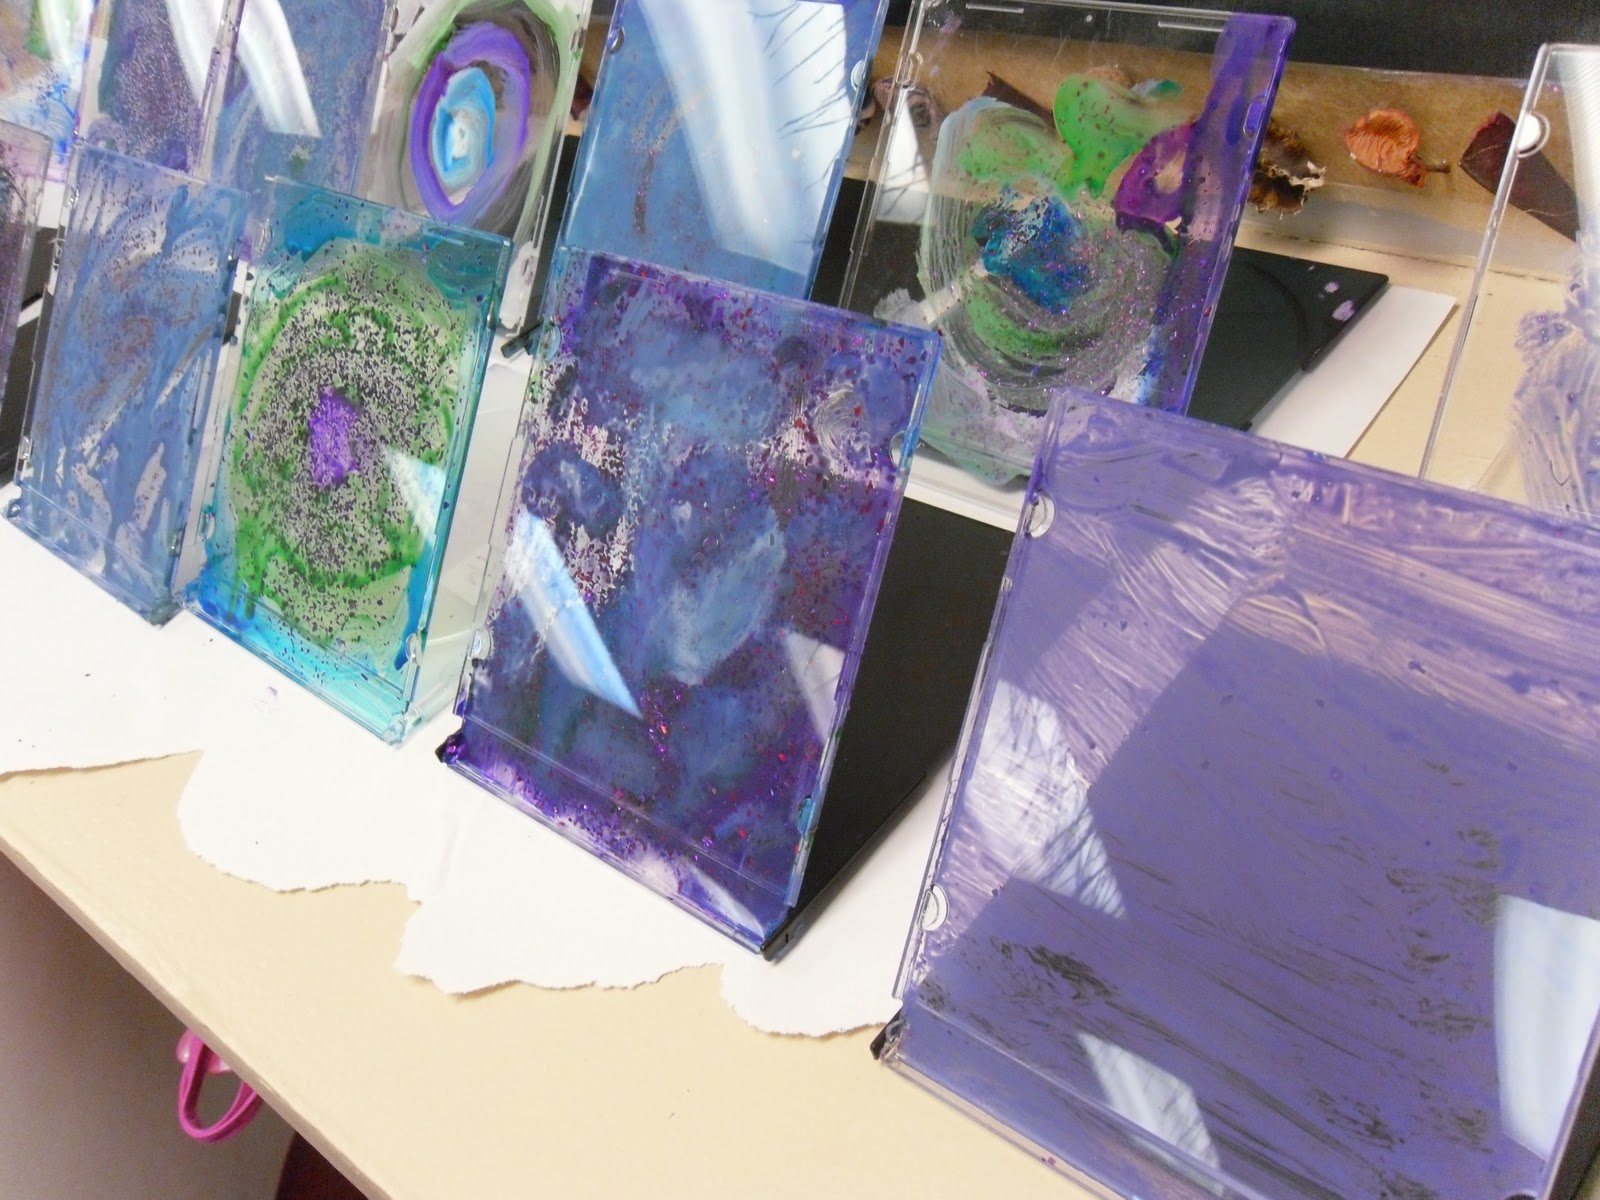 10 New Uses Tuesday {CD Jewel Cases} - Delicate Construction